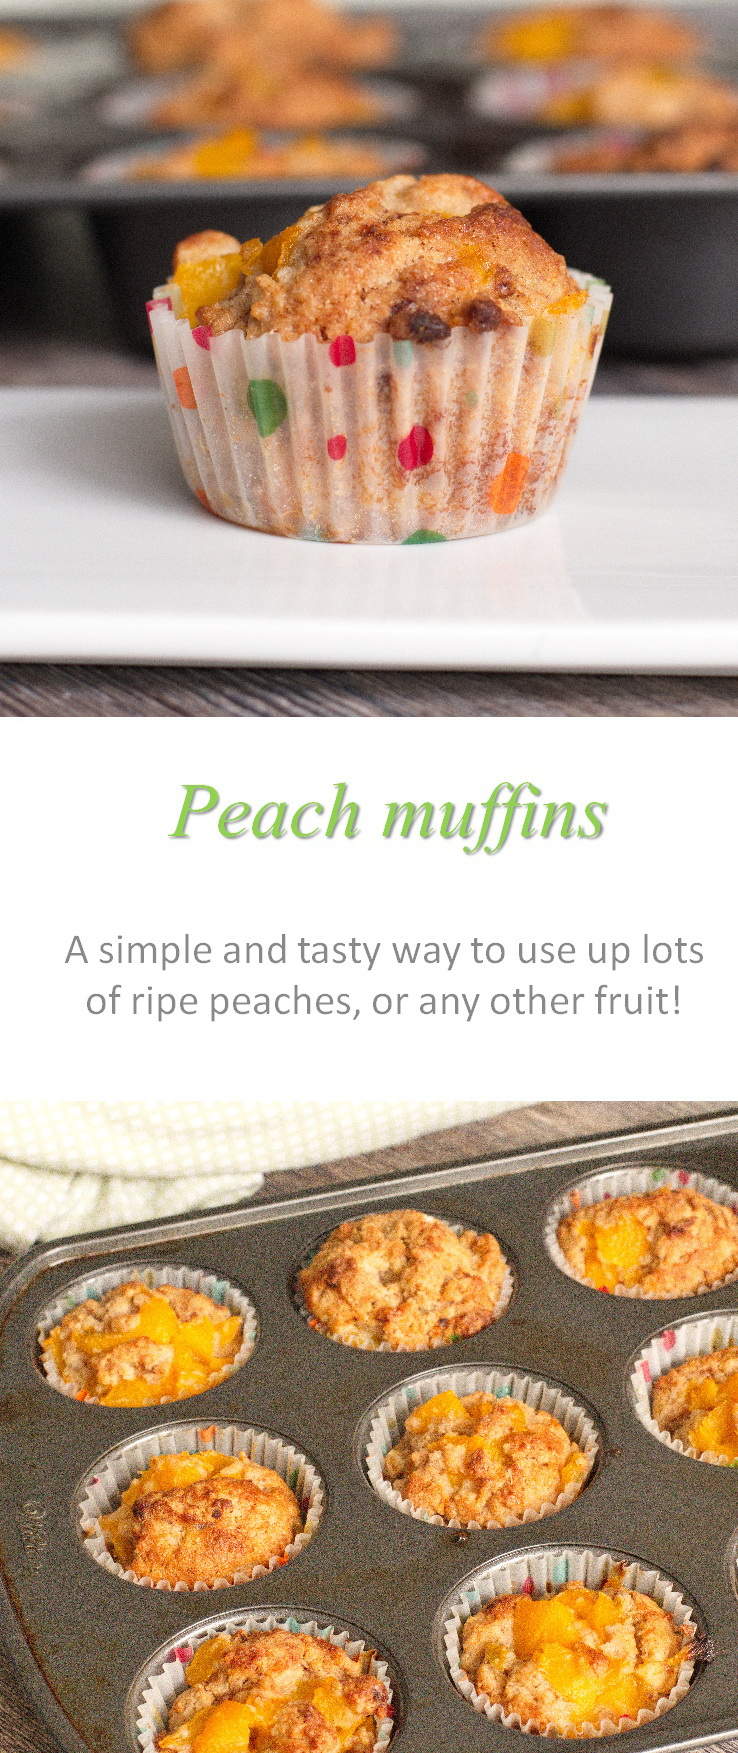 Peach muffins that are gluten and dairy-free  - really soft and moist, and yummy straight from the freezer.  #peach